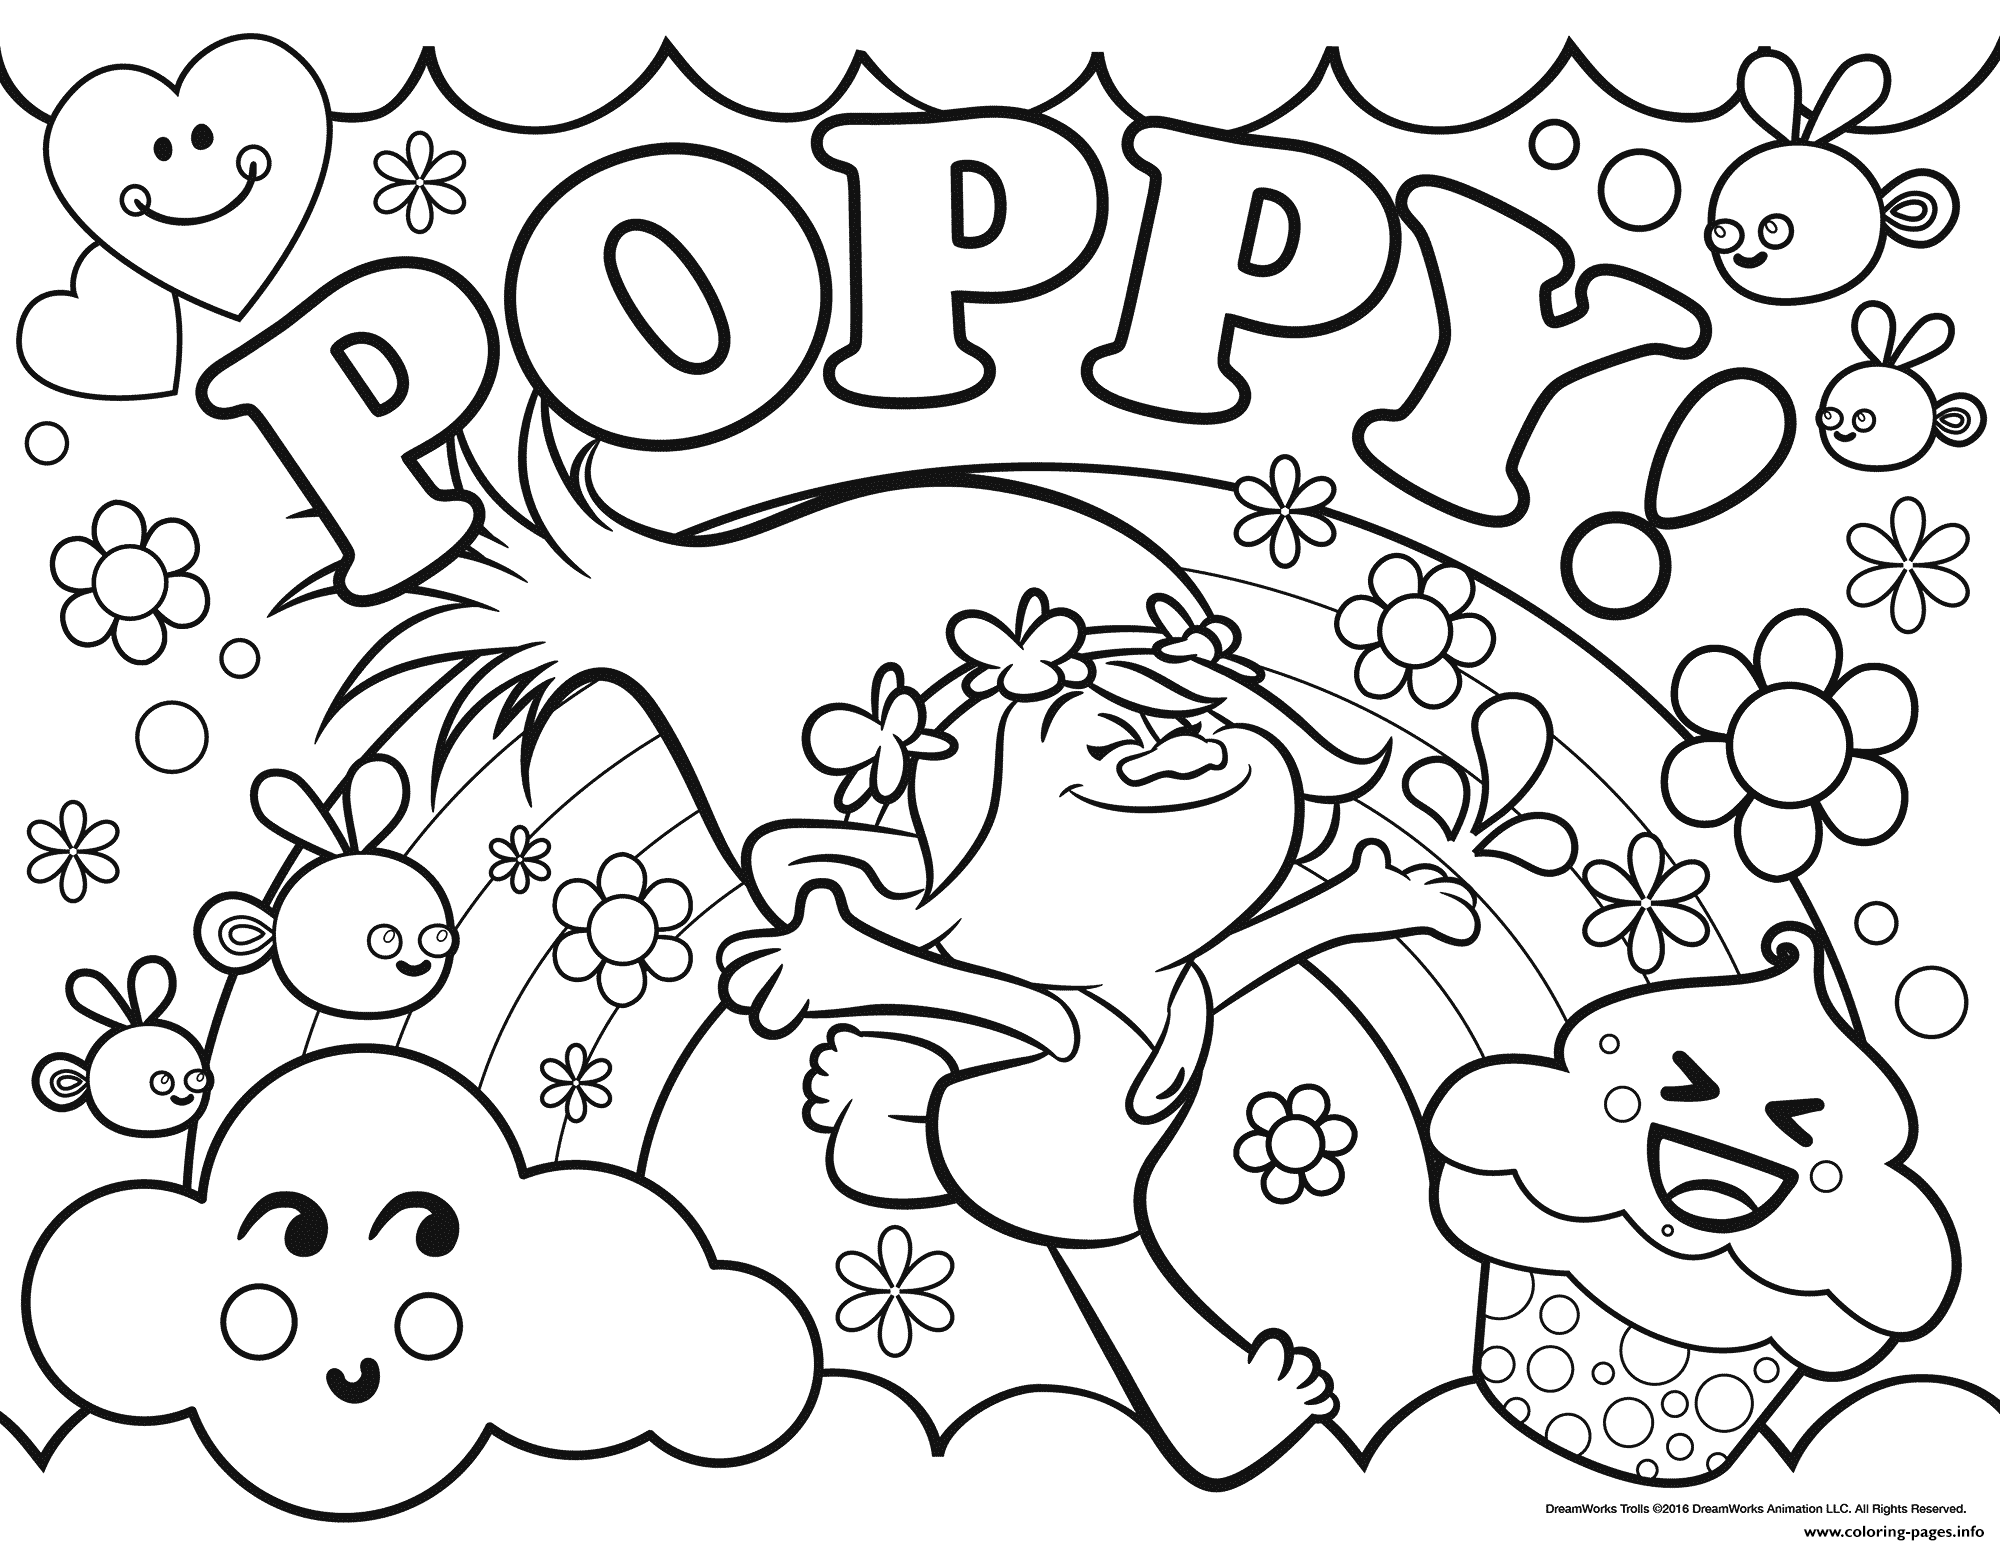 dreamworks trolls coloring pages Trolls Poppy Coloring Pages Printable dreamworks trolls coloring pages